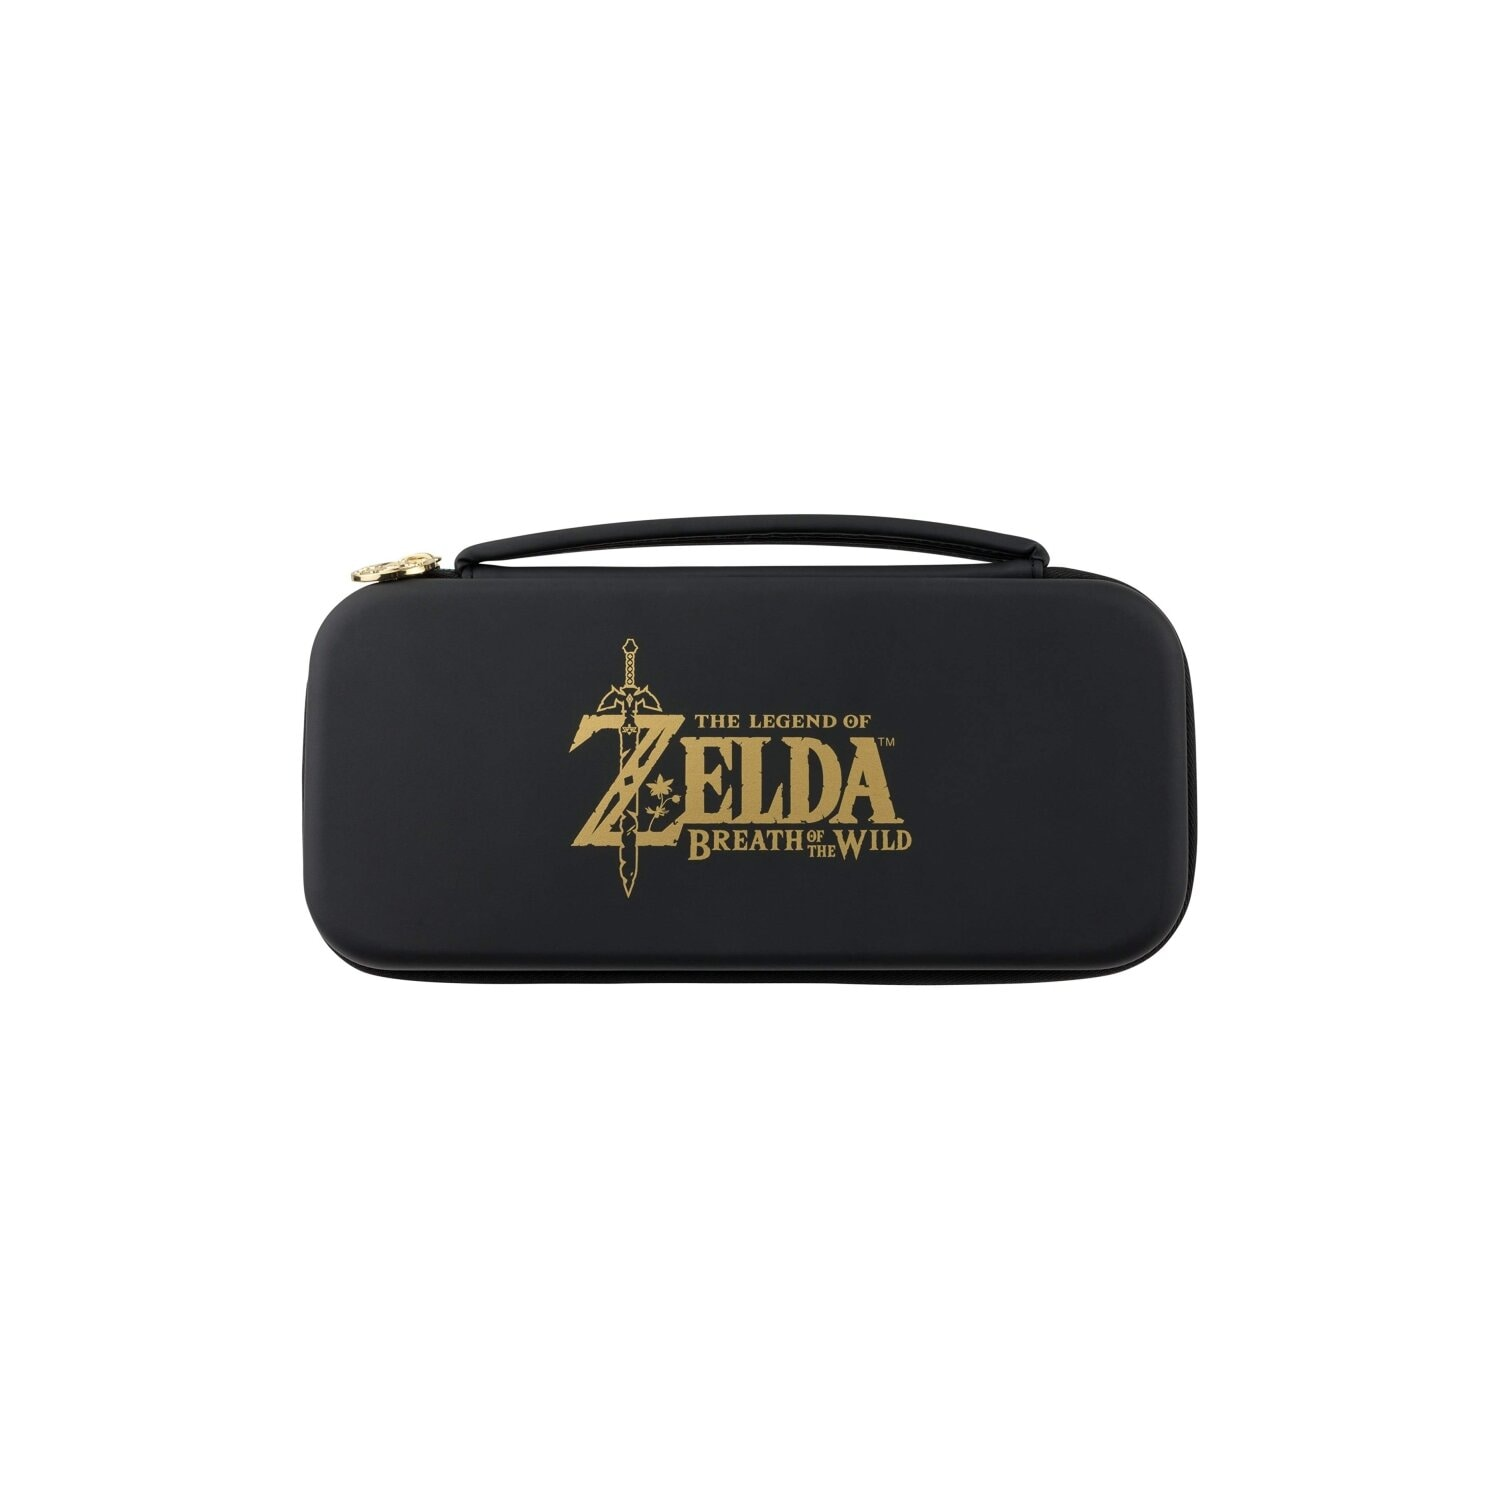 Etui PDP Deluxe Console Case - Zelda Guardian Edition do Nintendo Switch